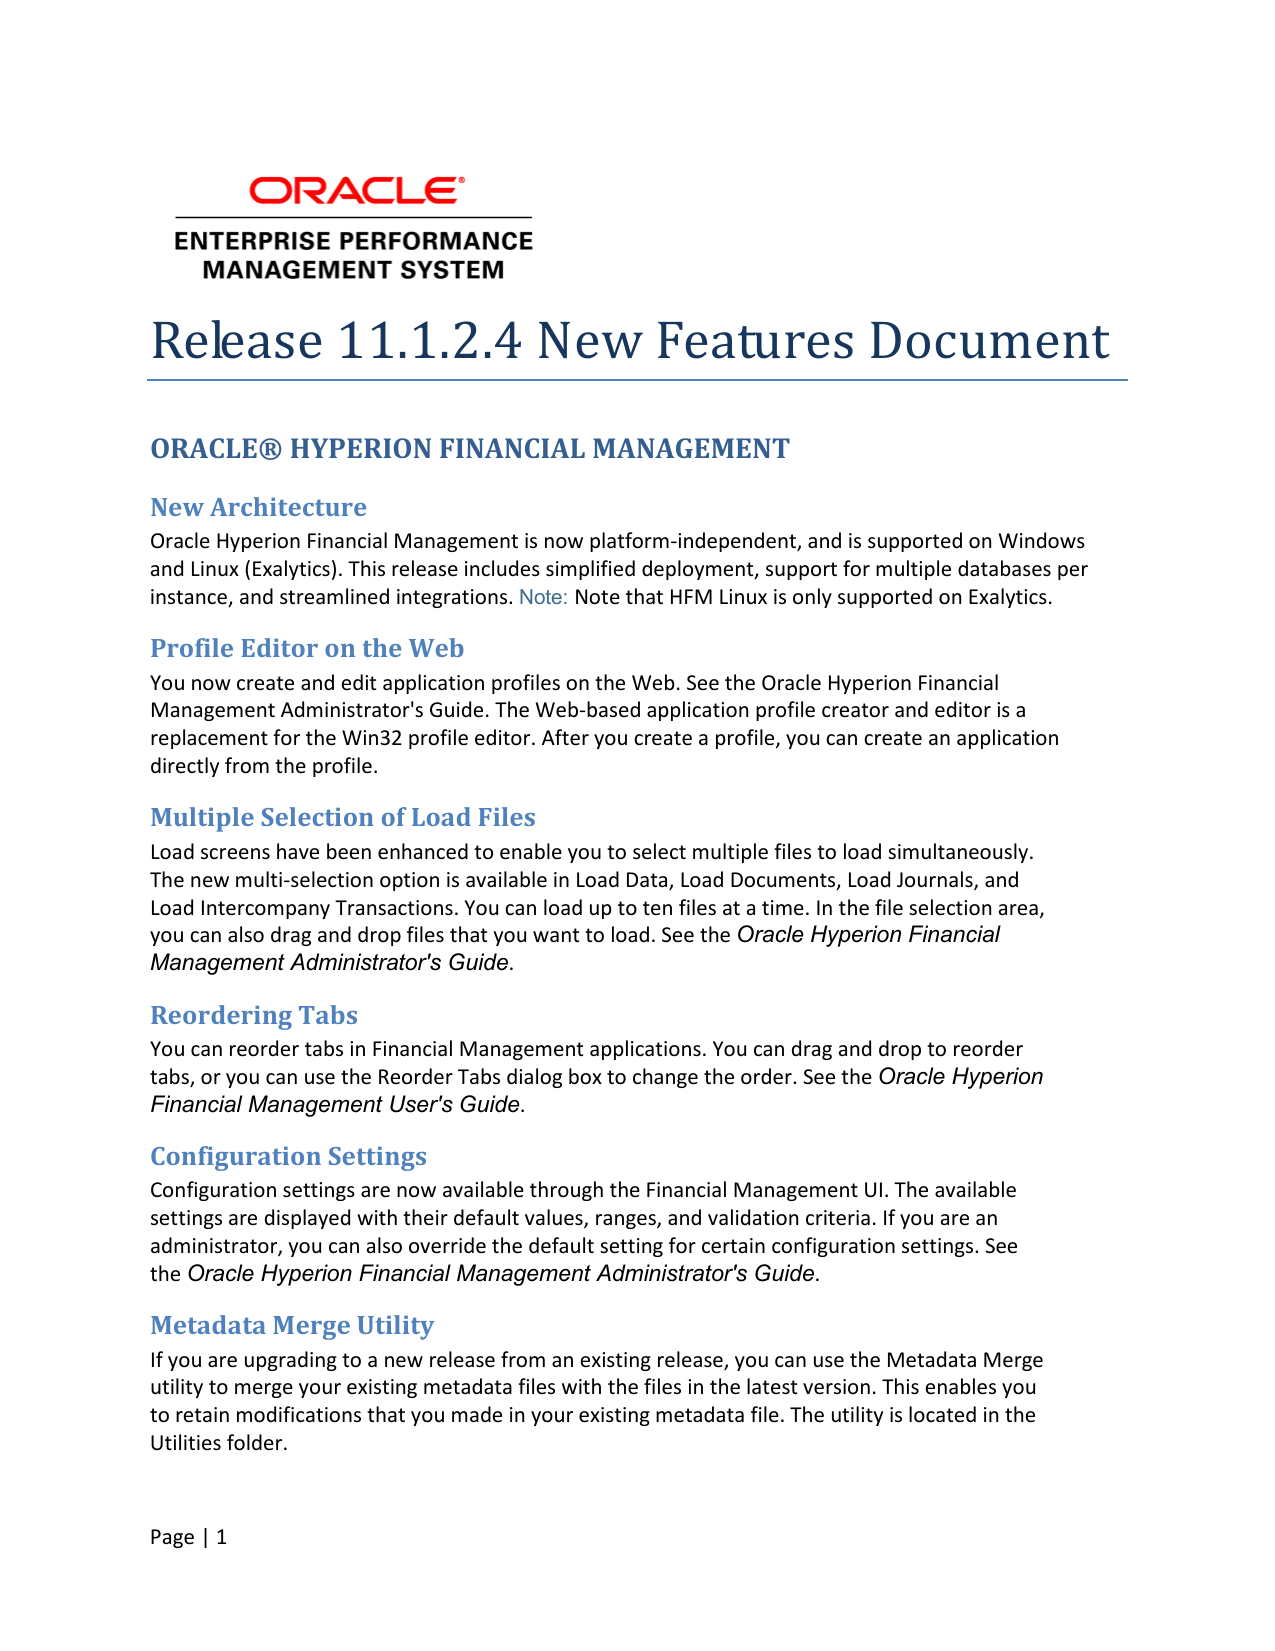 release 11 1 2 4 new features document rh studylib net oracle hyperion planning administrator's guide 11.1.2.4 hyperion database administrator's guide